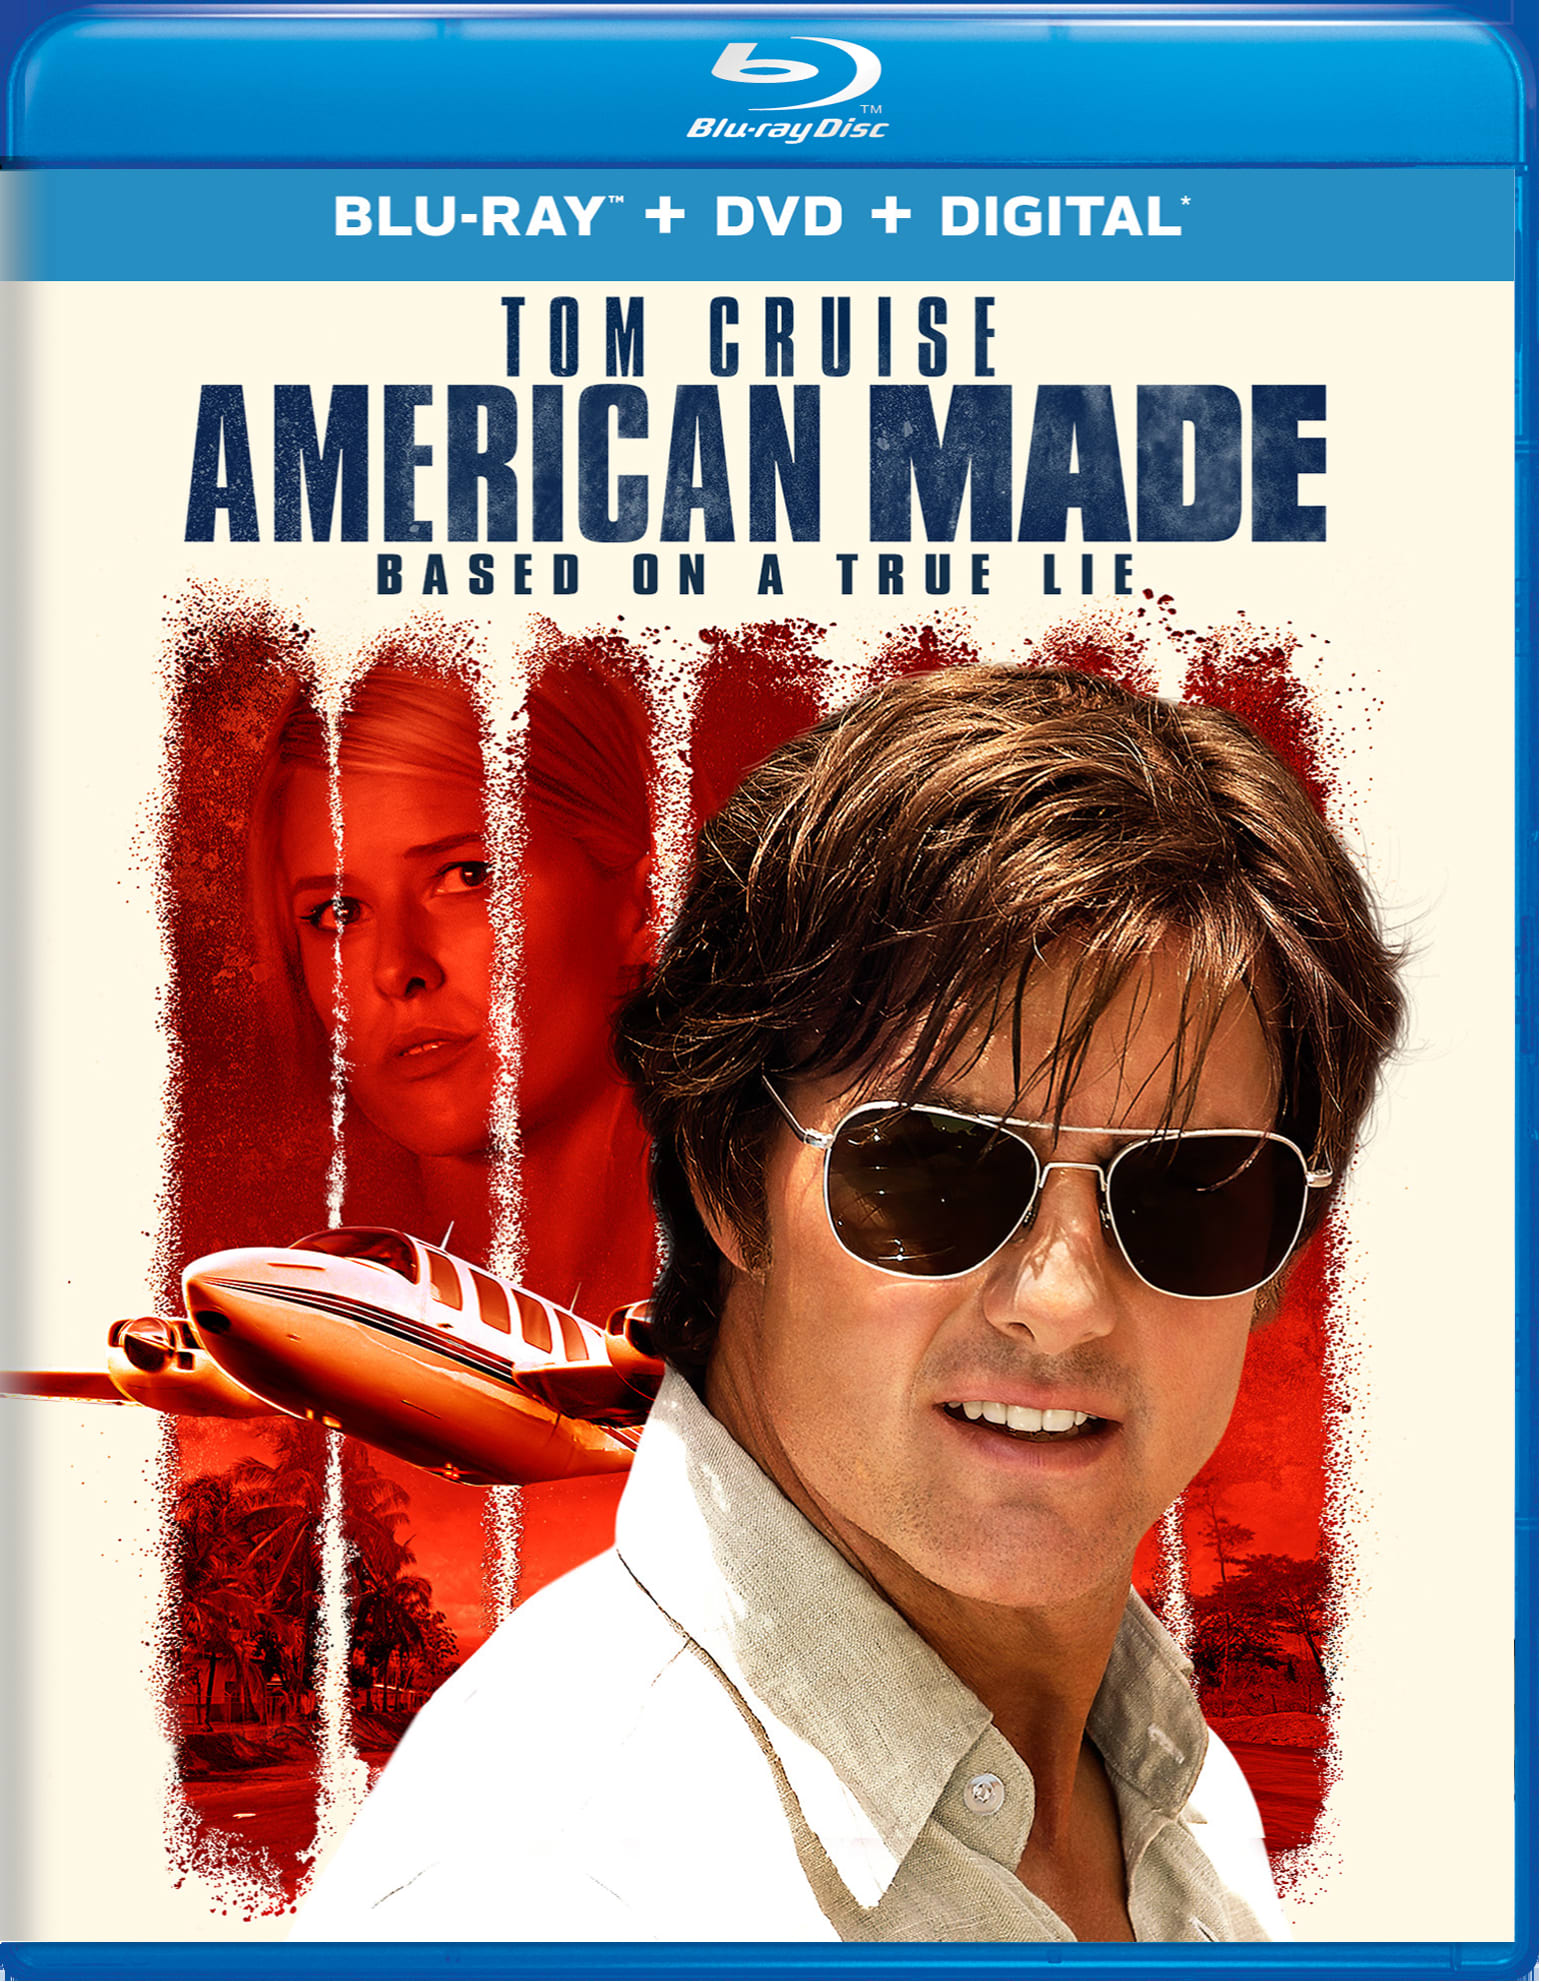 American Made (DVD + Digital) [Blu-ray]